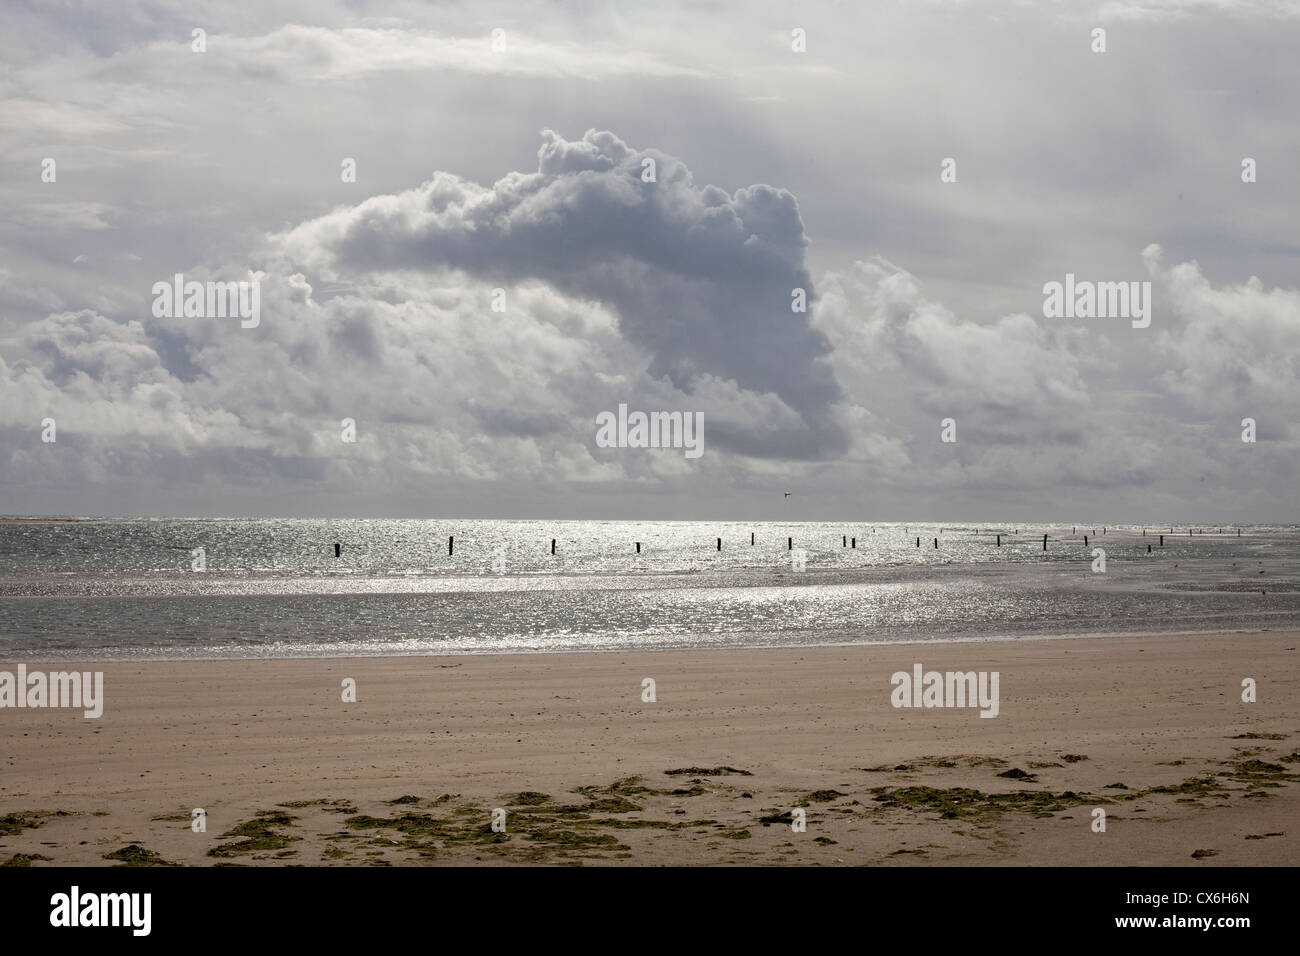 Dundrum Bay, County Down, Northern Ireland - Stock Image